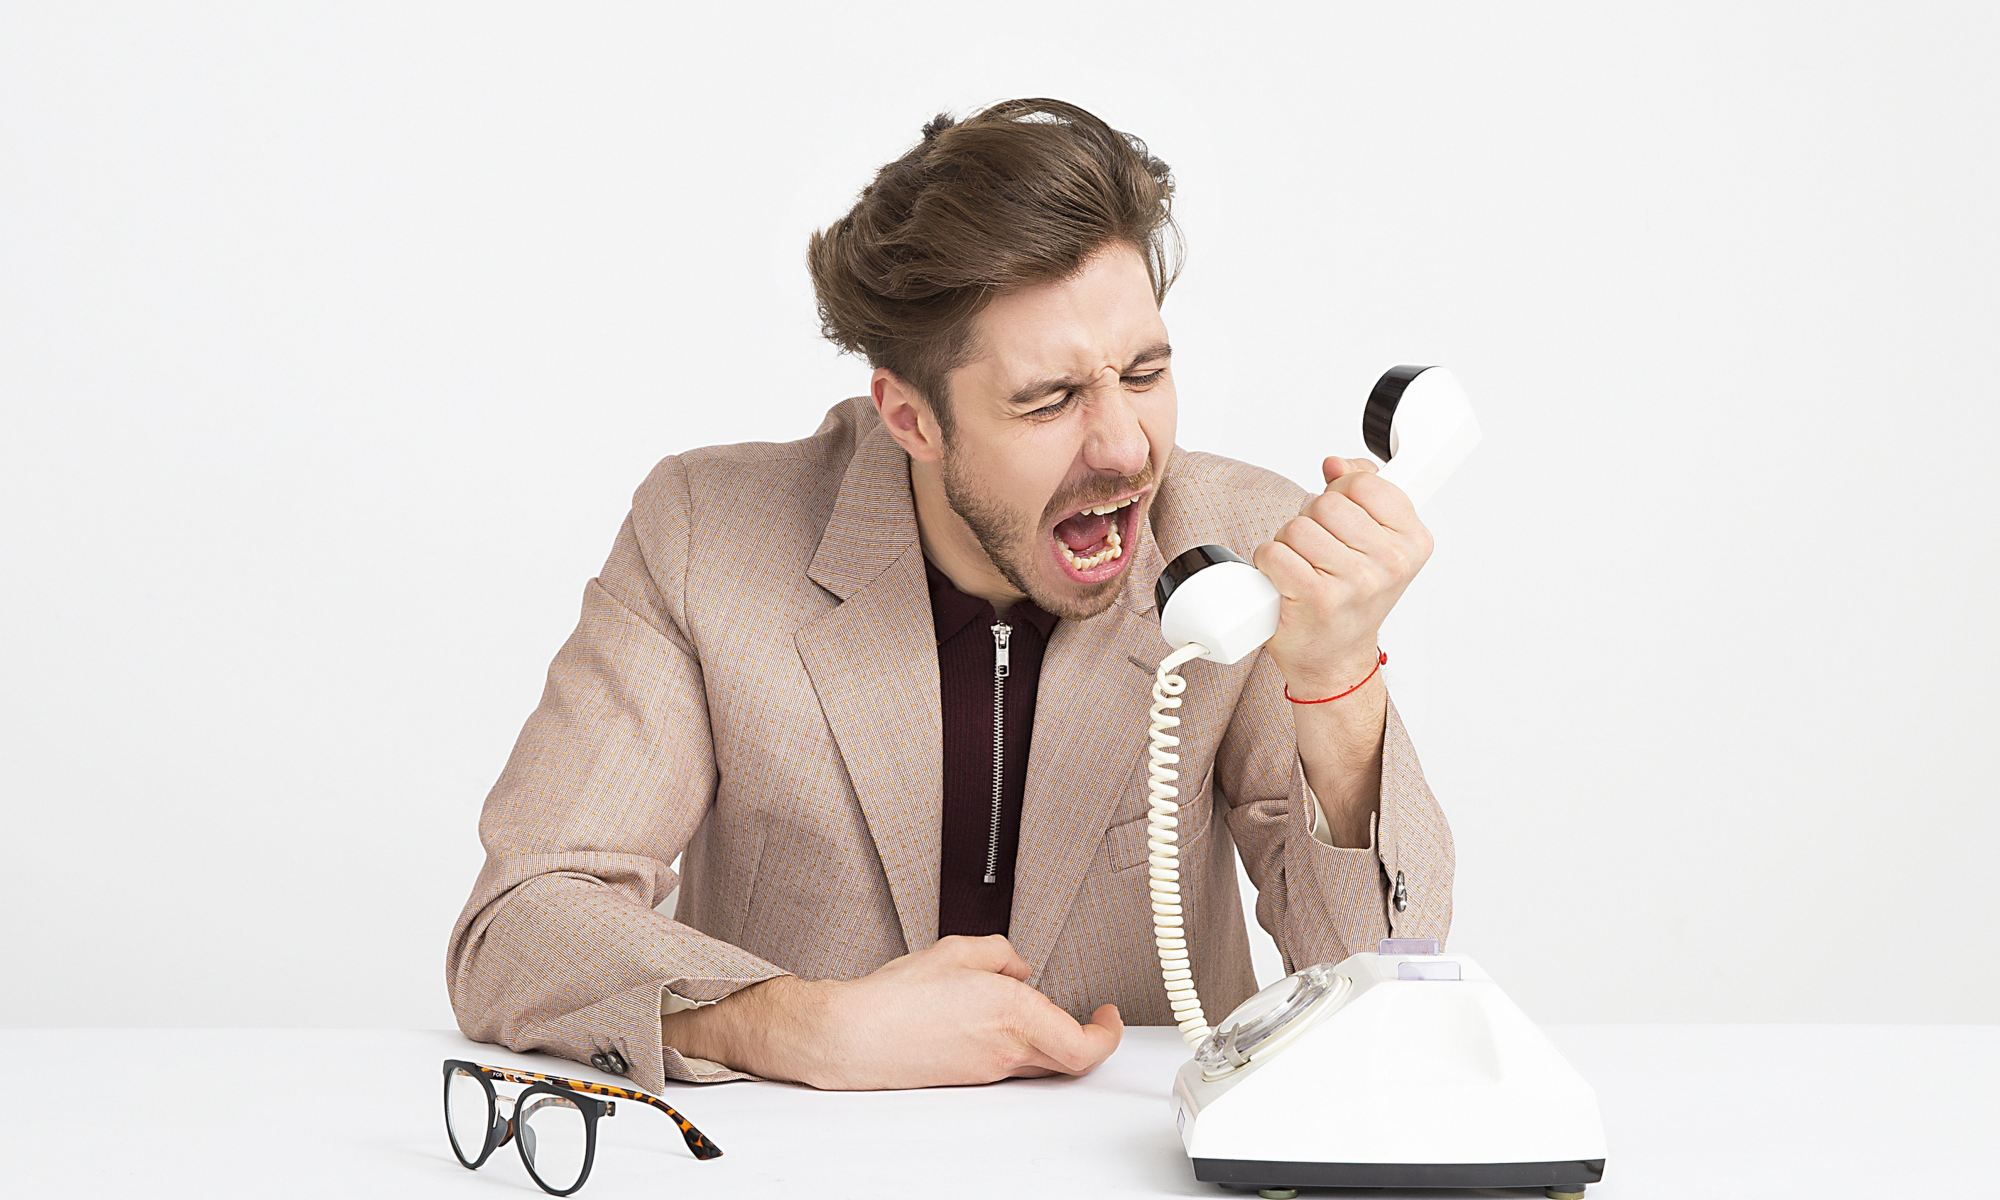 Man holding white telephone at work screaming and arguing